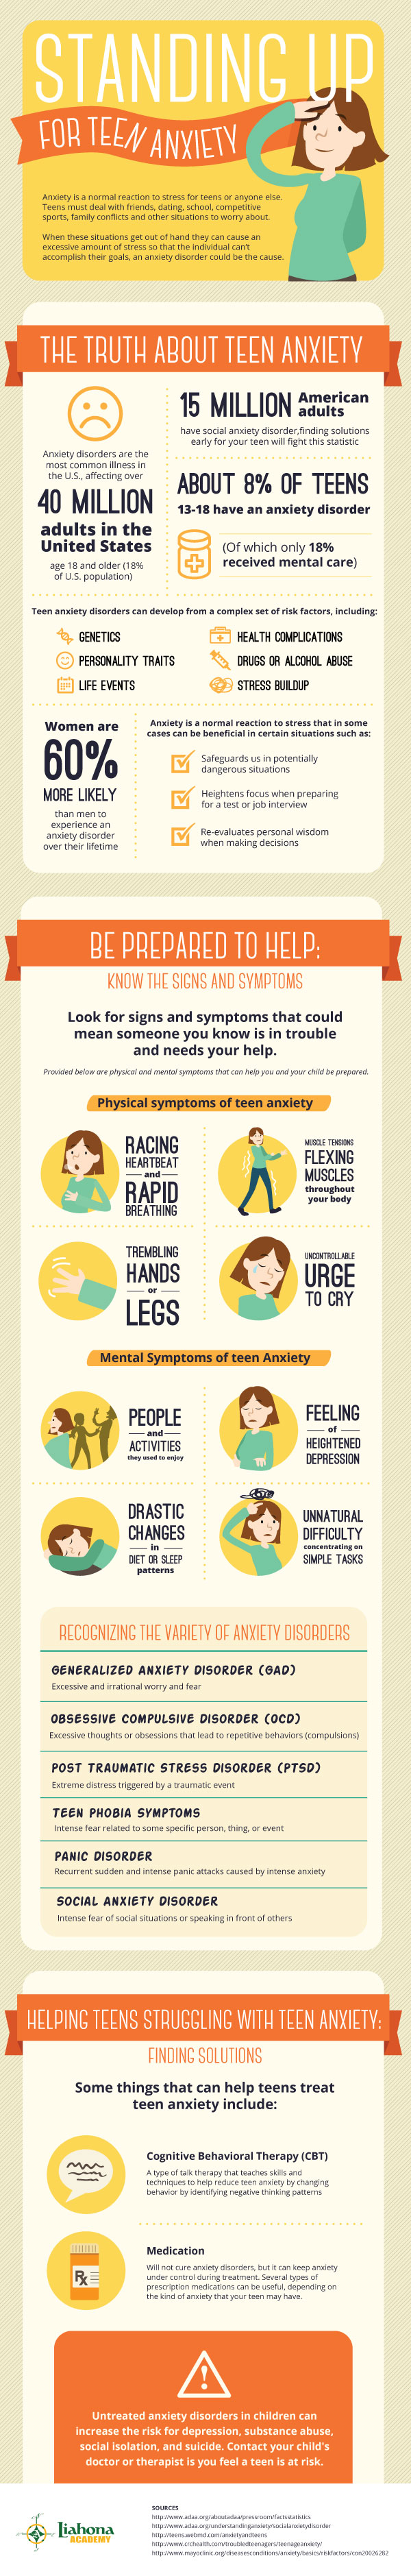 Standing-Up-for-Teen-Anxiety